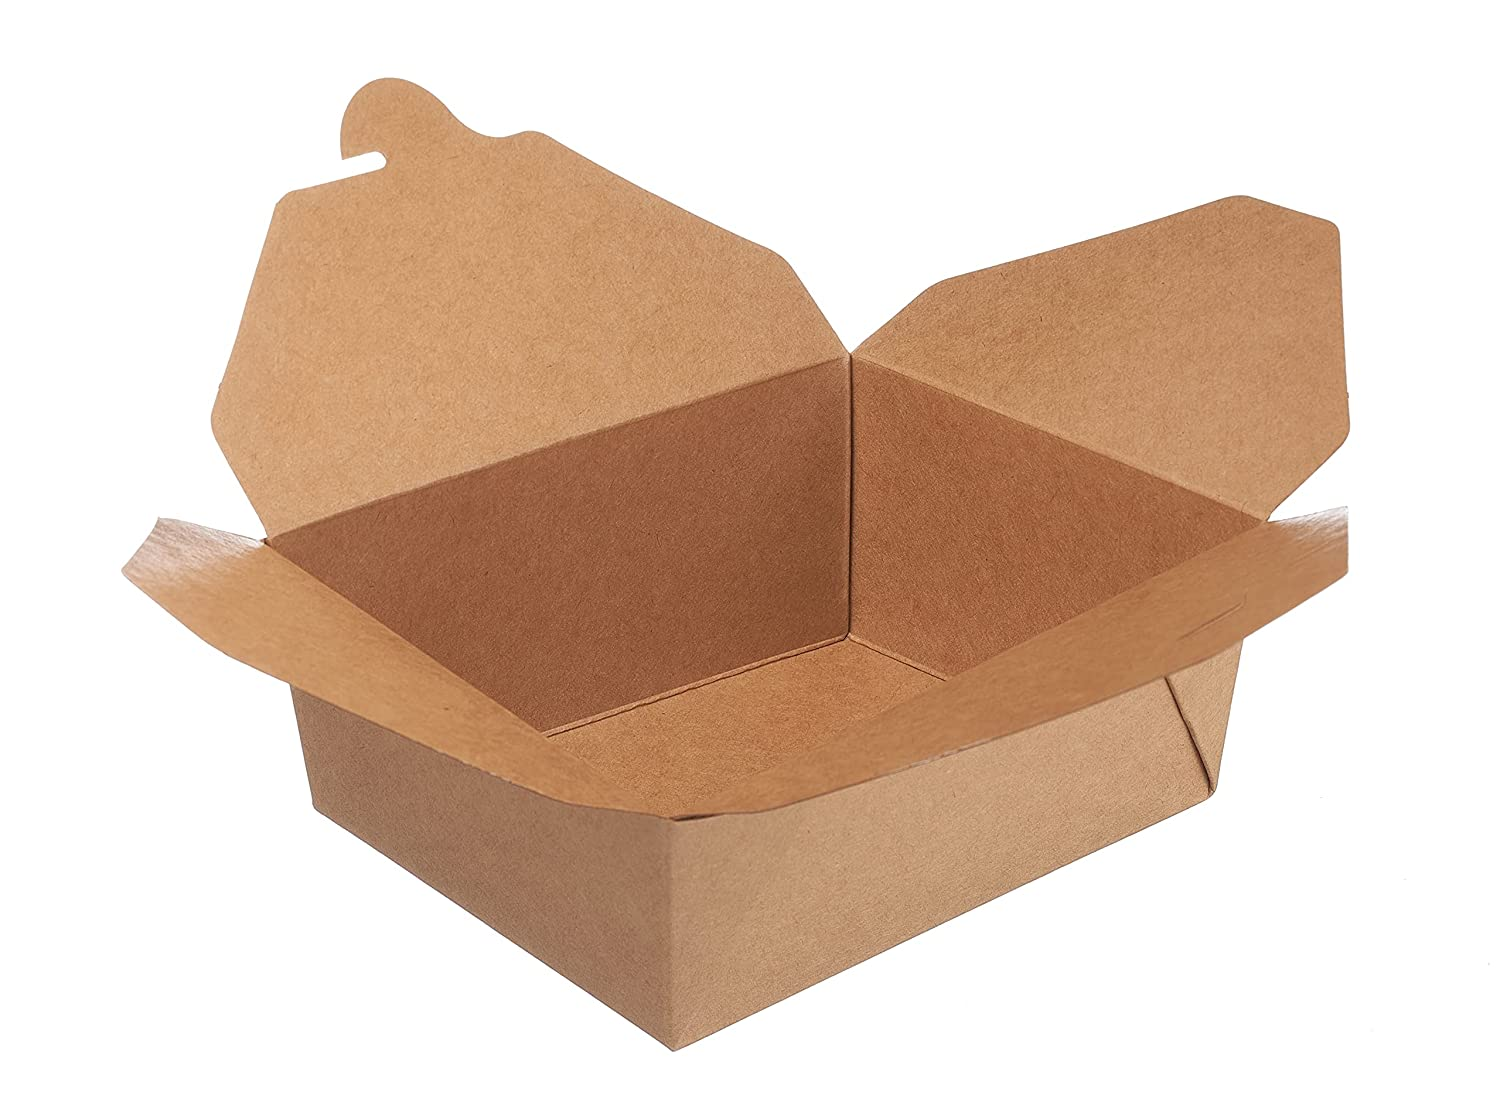 Take Out Food Containers 49 oz Kraft Brown Paper Take Out Boxes Microwaveable Leak and Grease Resistant Food Containers - To Go Containers for Restaurant, Catering, Food Truck - Recyclable Lunch Box #2 by EcoQuality (25)